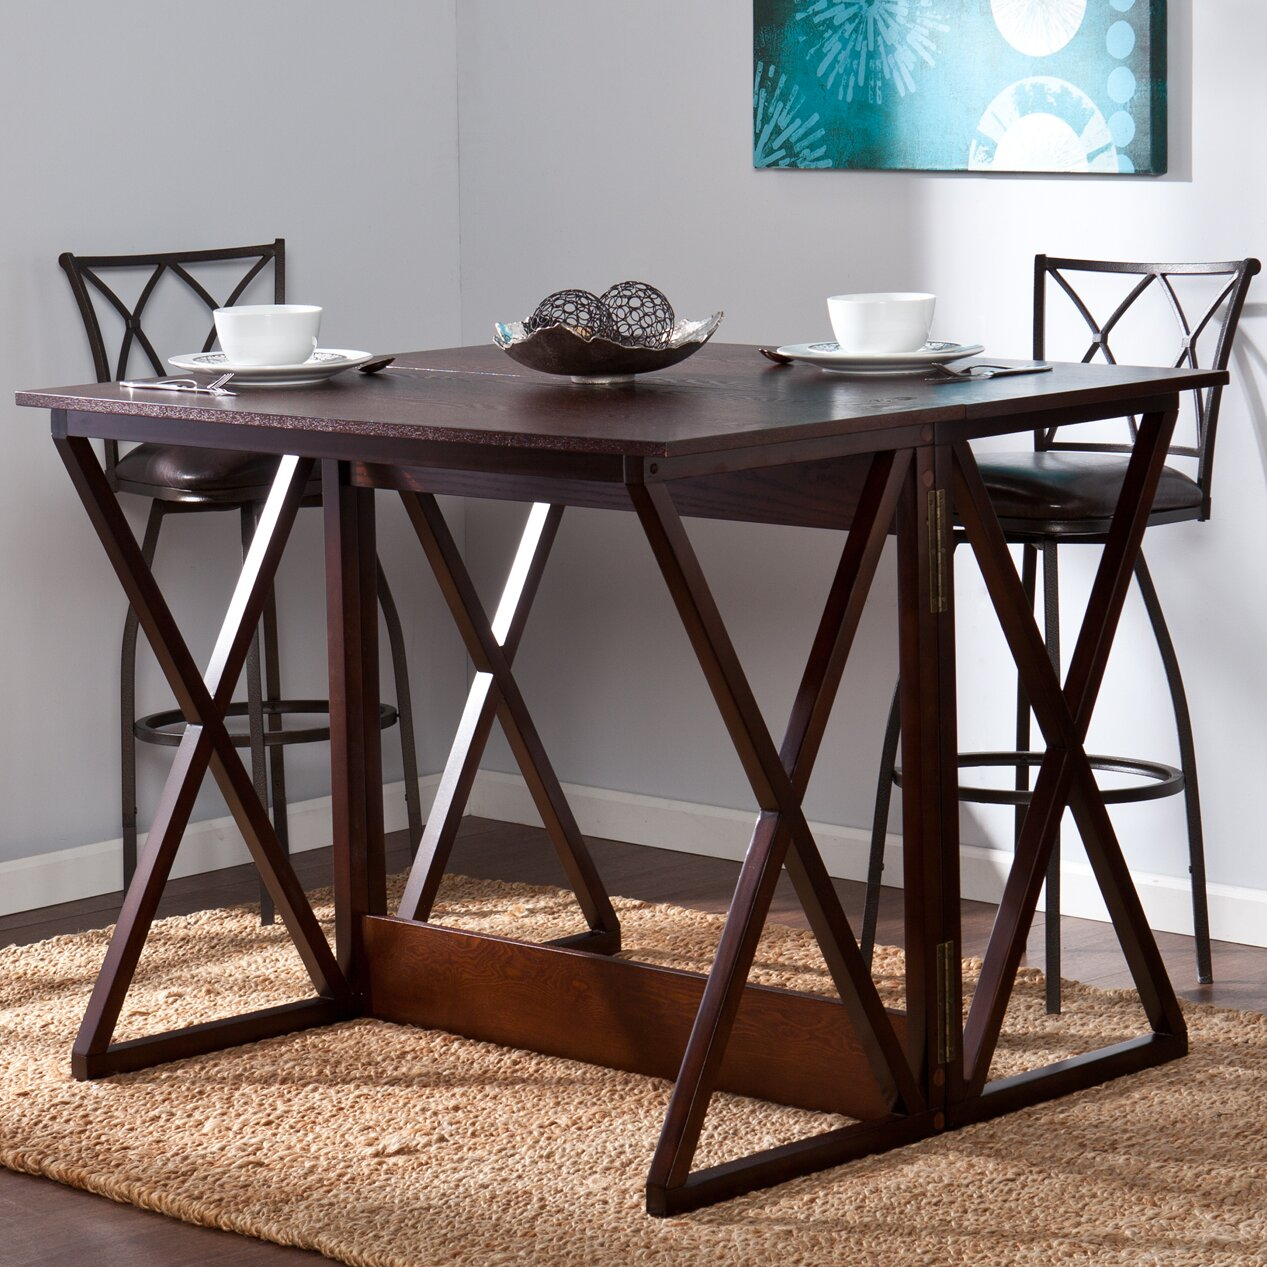 Wildon Home 174 Keraton Counter Height Extendable Dining  : Keraton Counter Height Extendable Dining Table WF3153 from www.wayfair.com size 1267 x 1267 jpeg 437kB